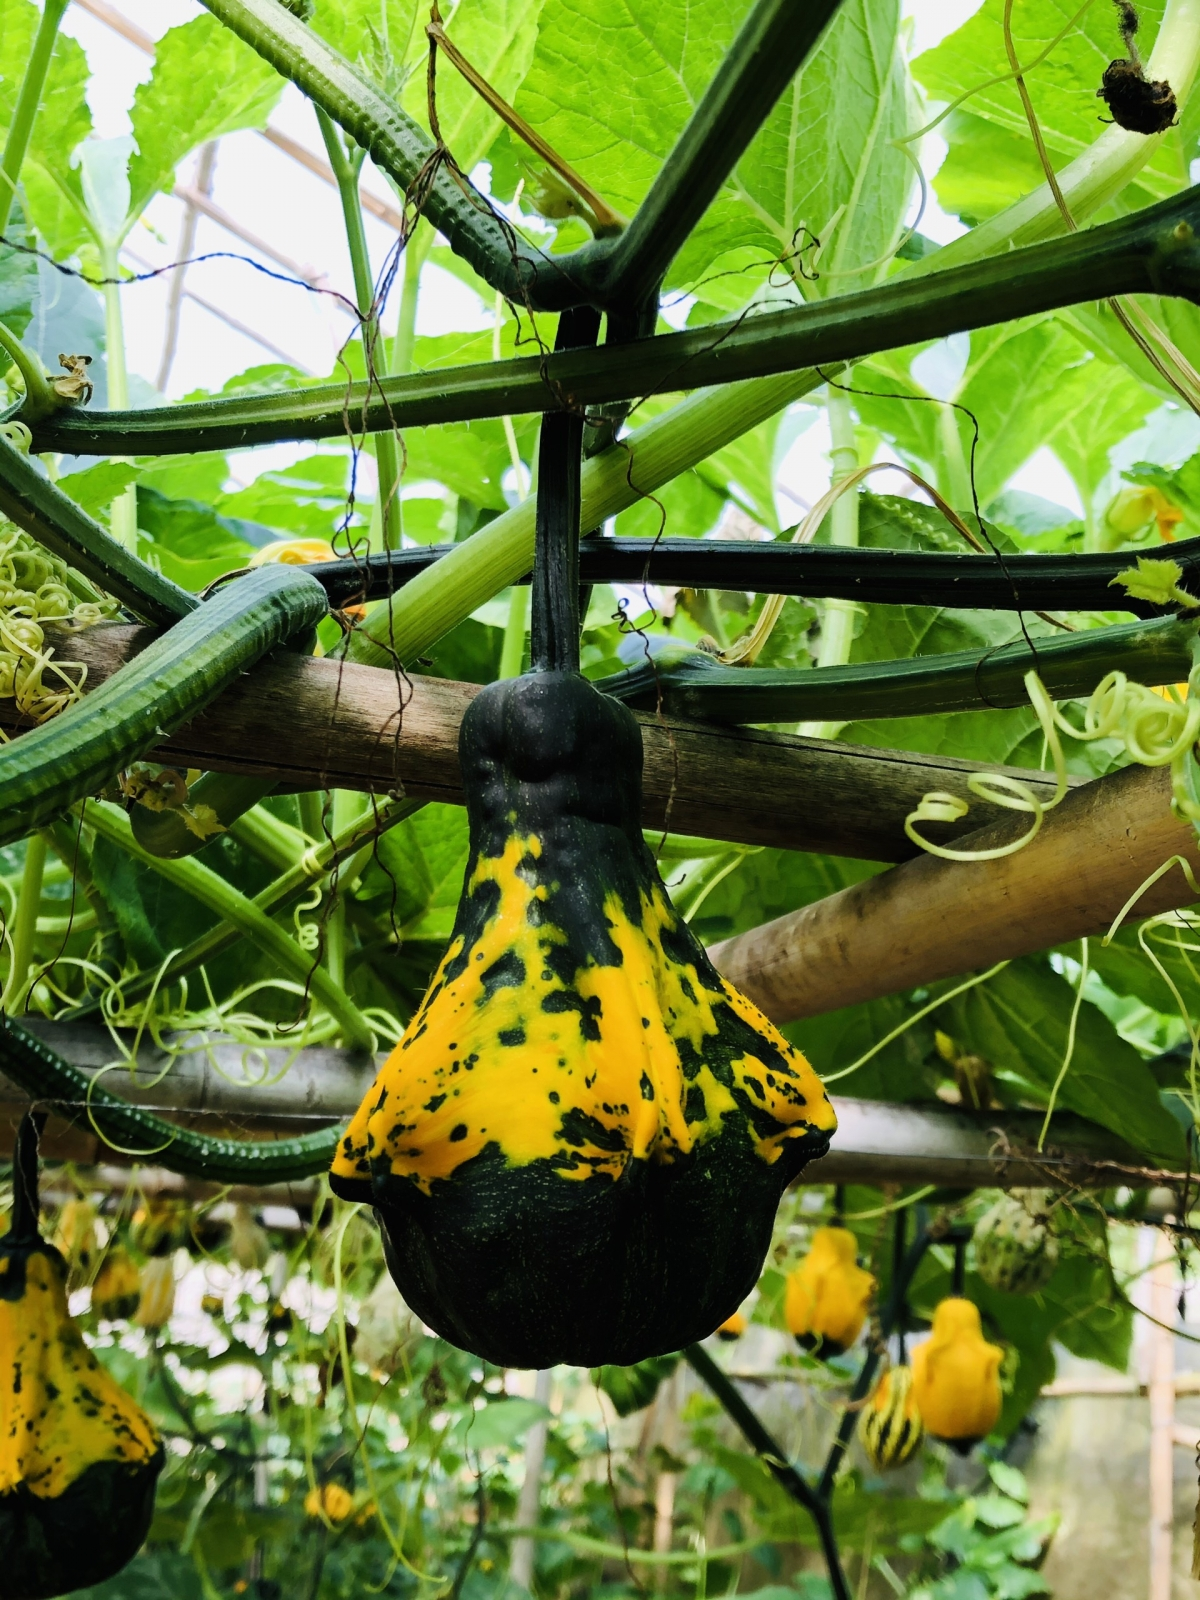 It takes gardeners around one year in order to grow such unique pumpkins and have them ready in the buildup to Halloween.